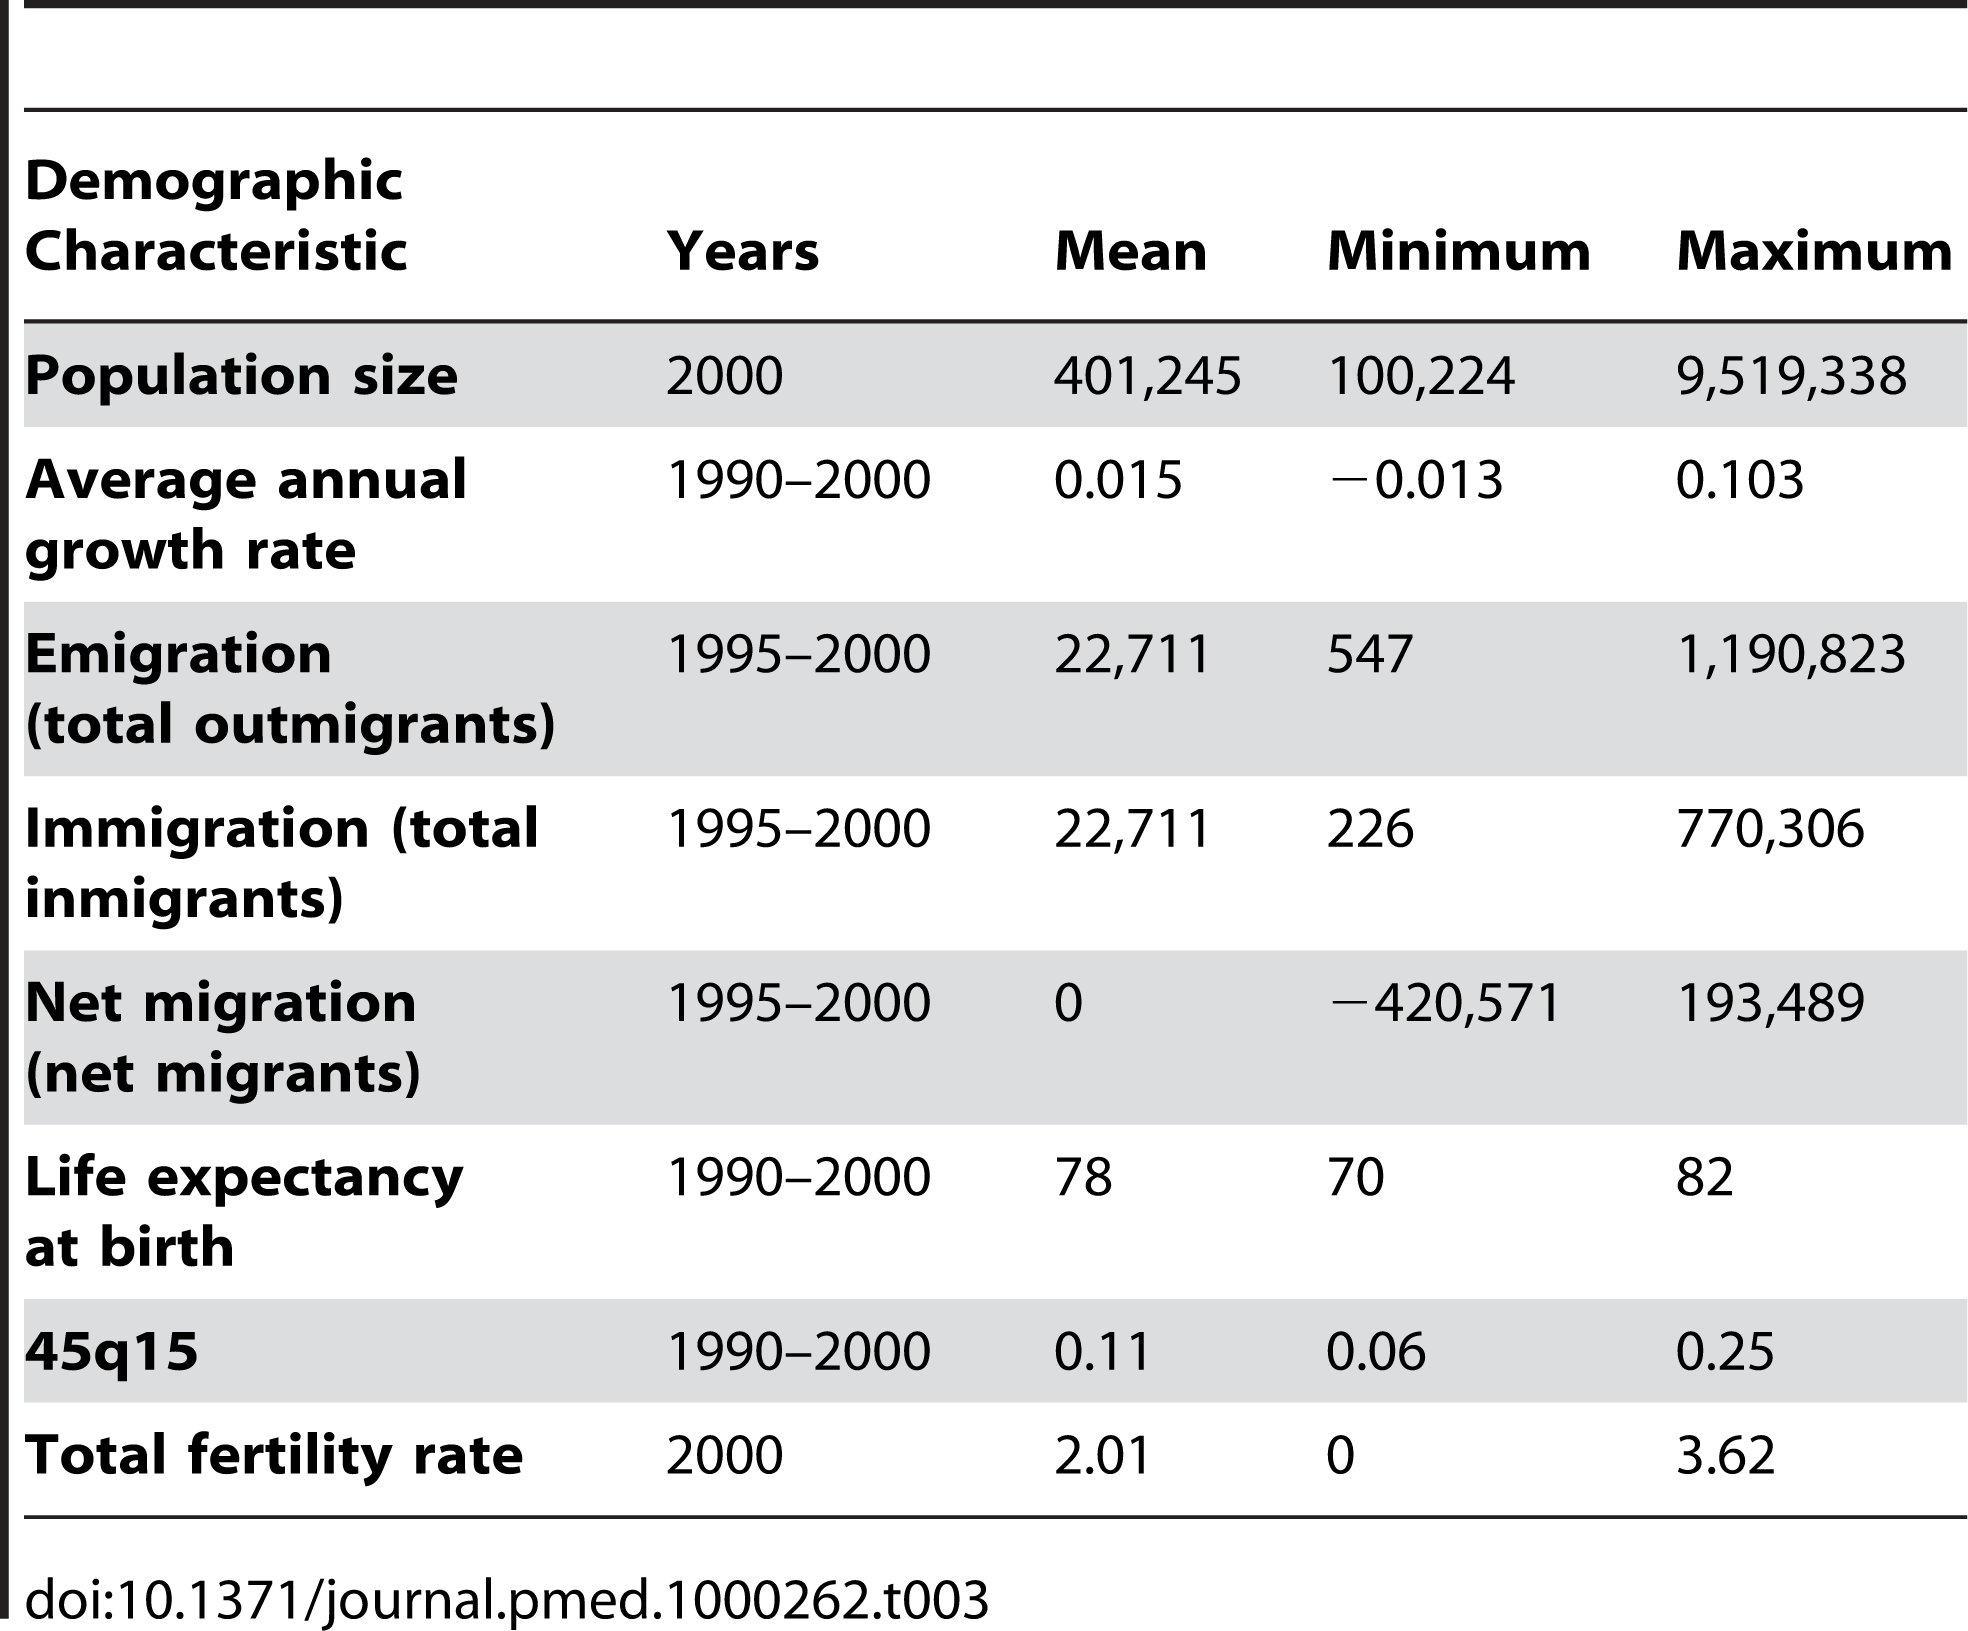 Summary of demographic characteristics of US counties with population greater than 100,000 in 2000.